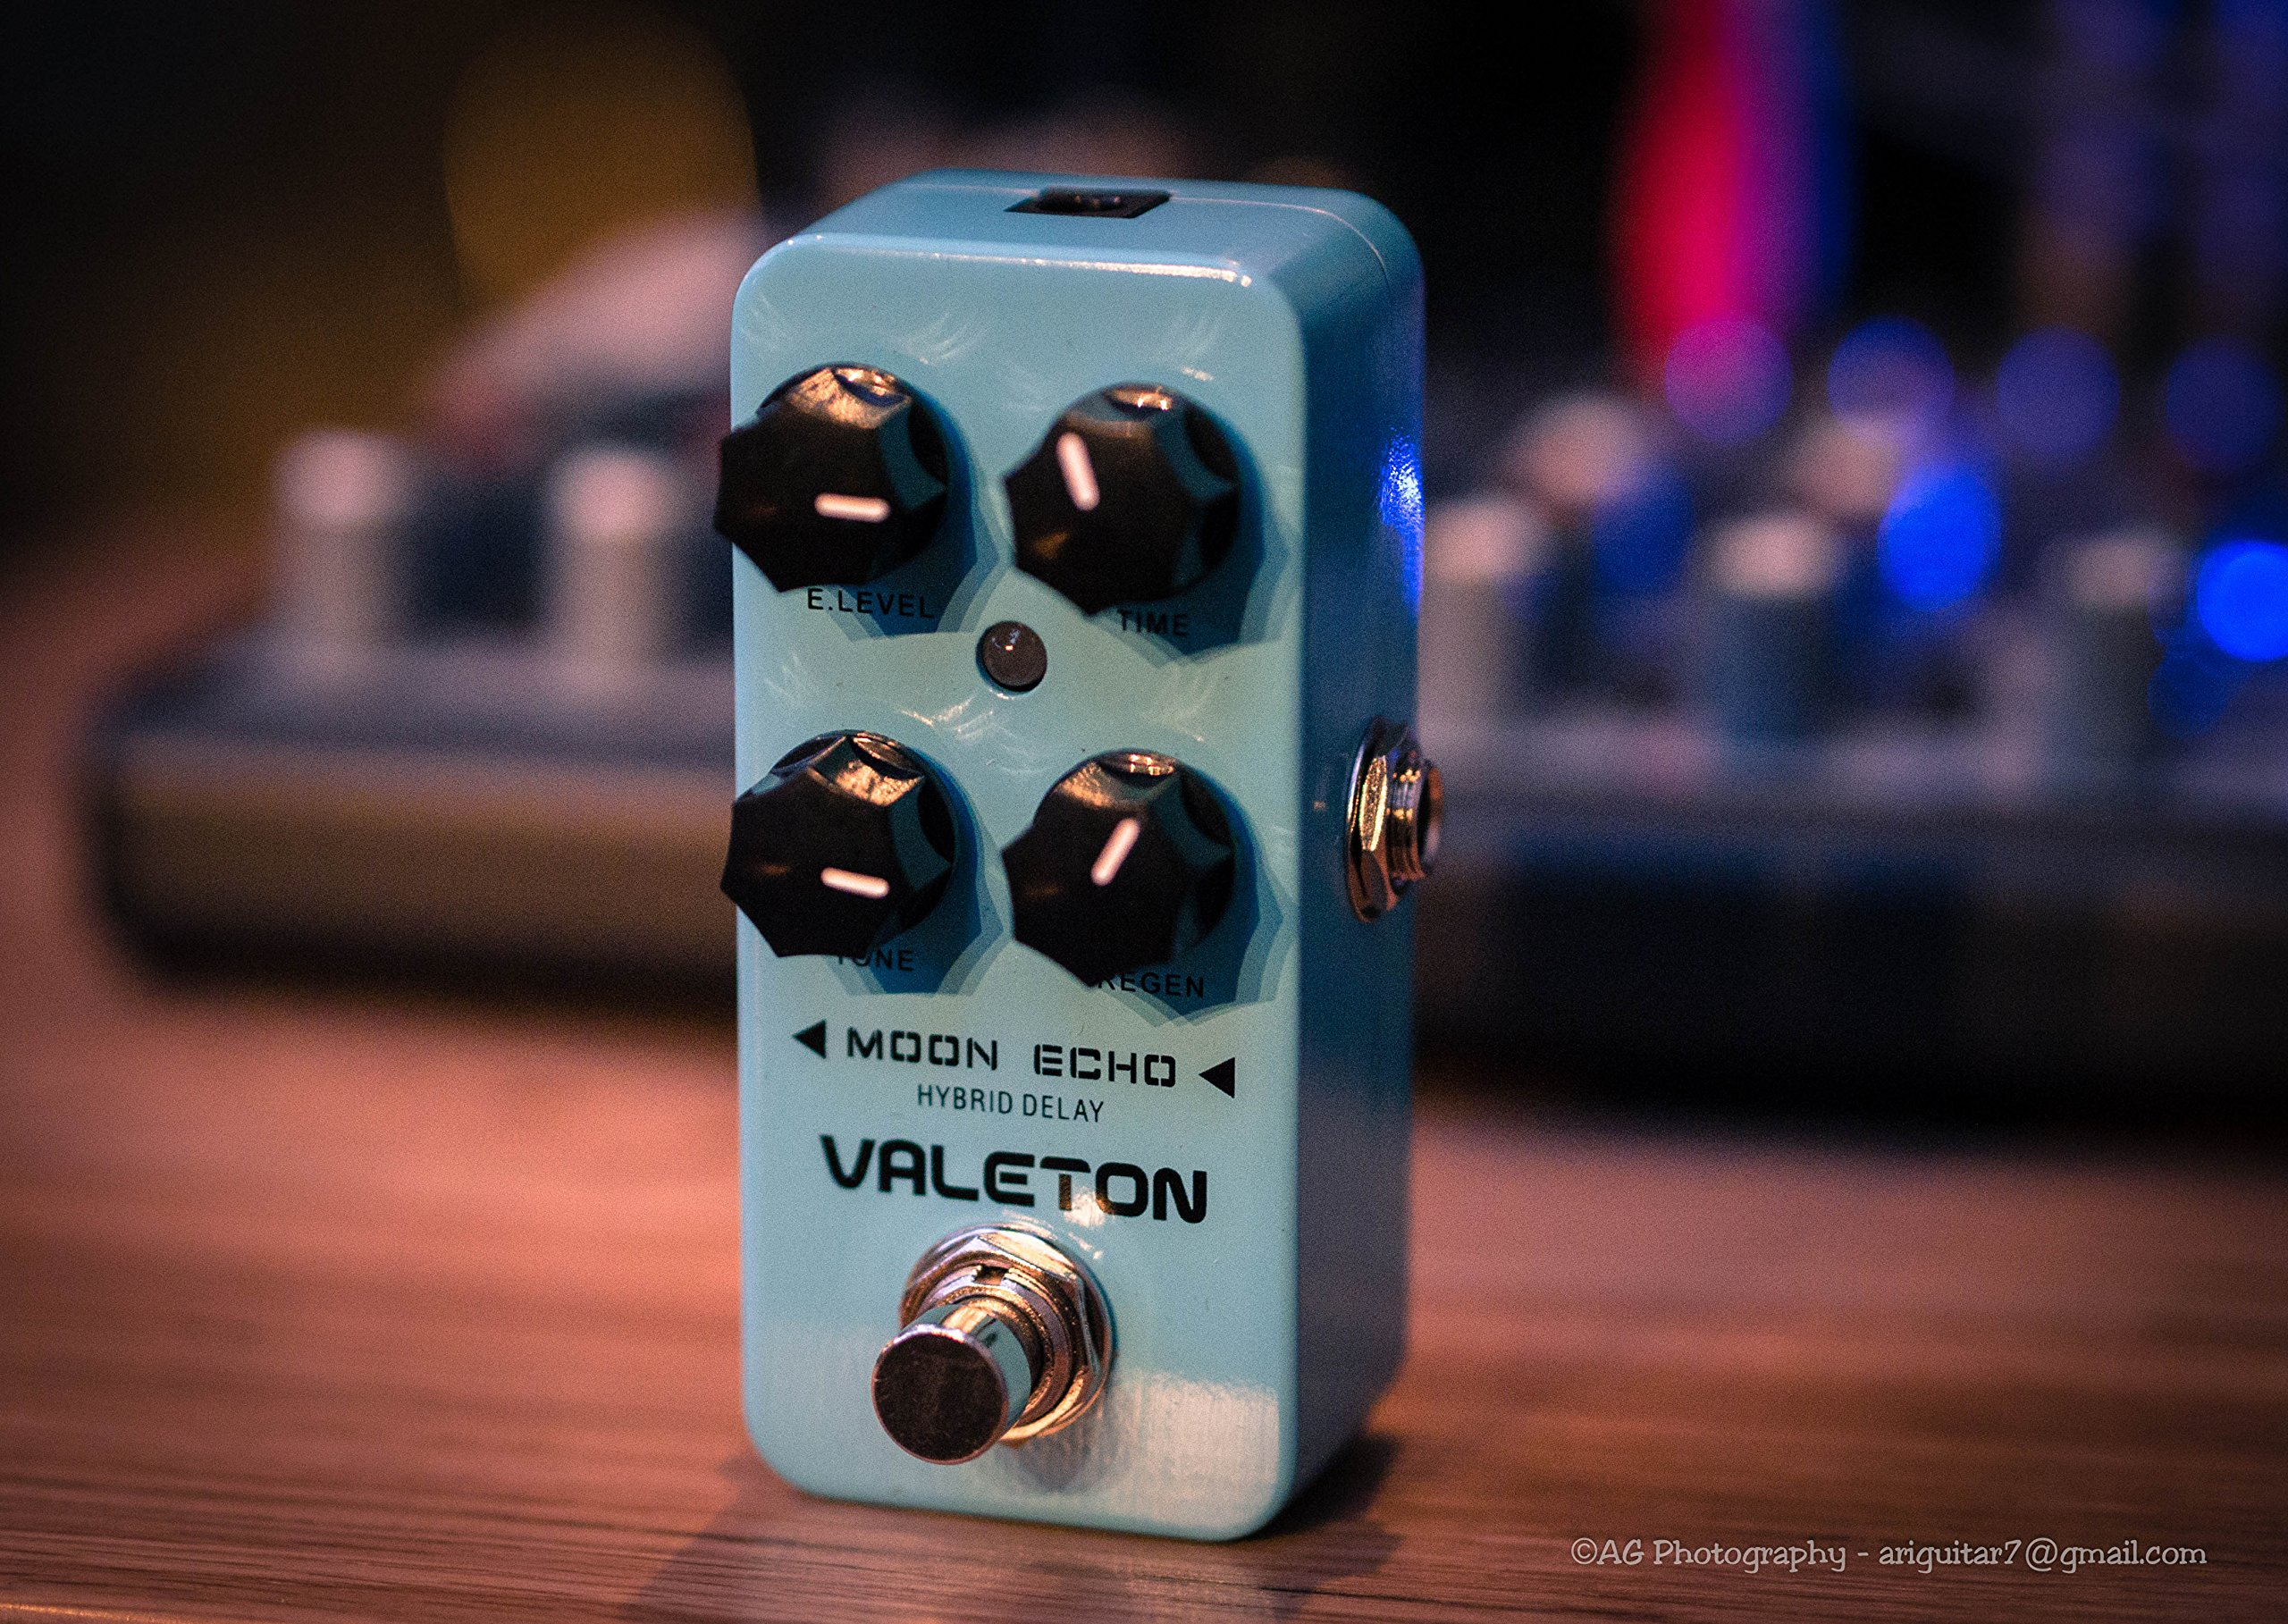 Valeton Moon Echo Hybrid Delay Guitar Effects Pedal True Bypass by Valeton